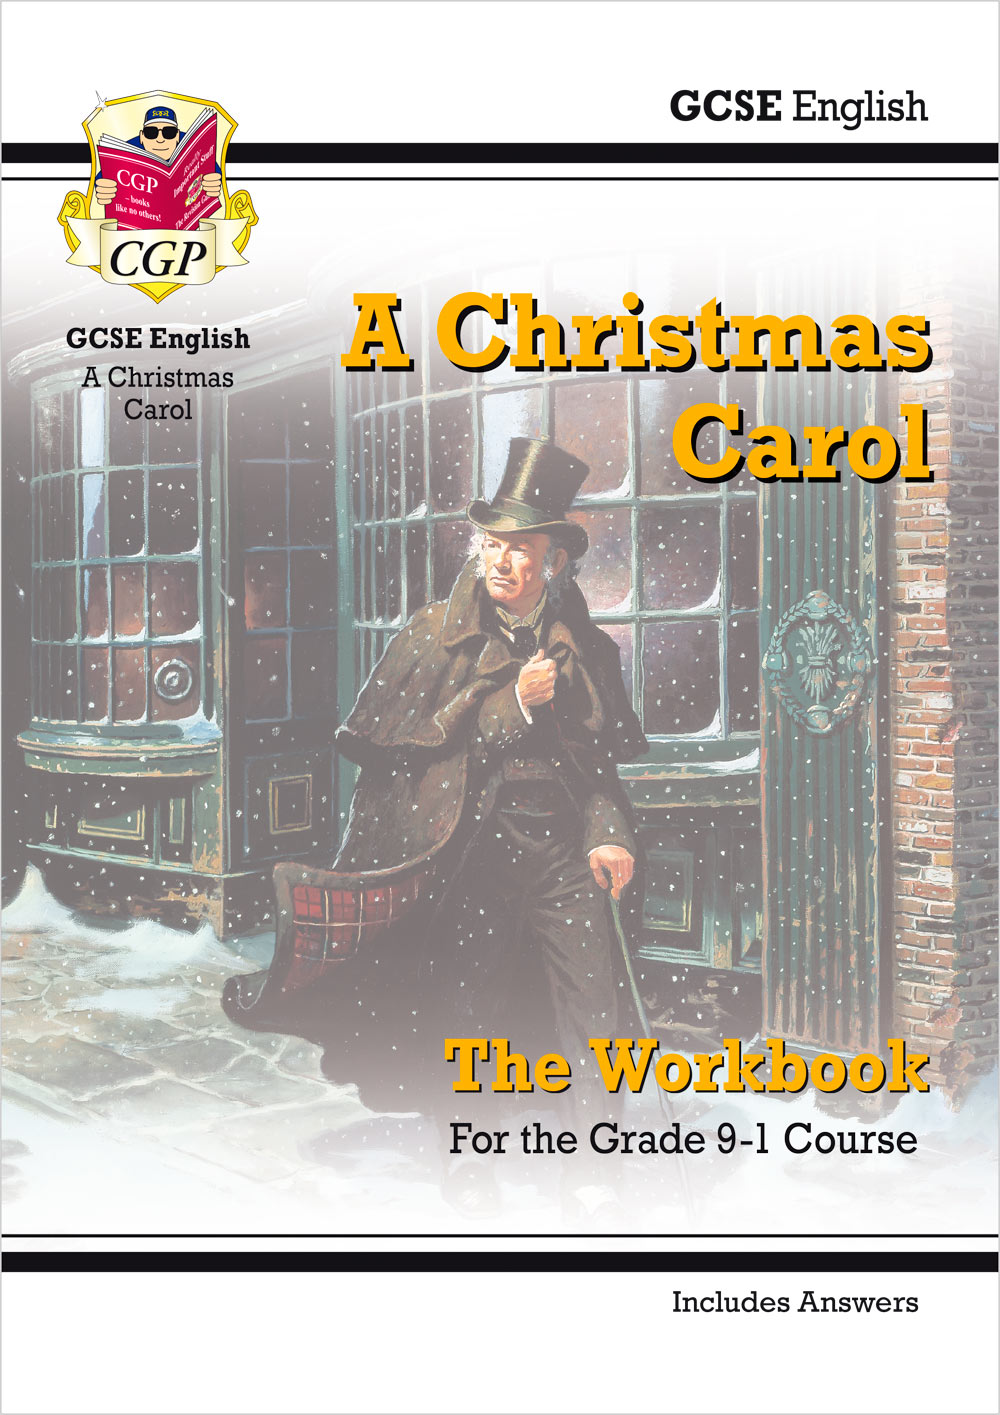 ETWCC41 - New Grade 9-1 GCSE English - A Christmas Carol Workbook (includes Answers)